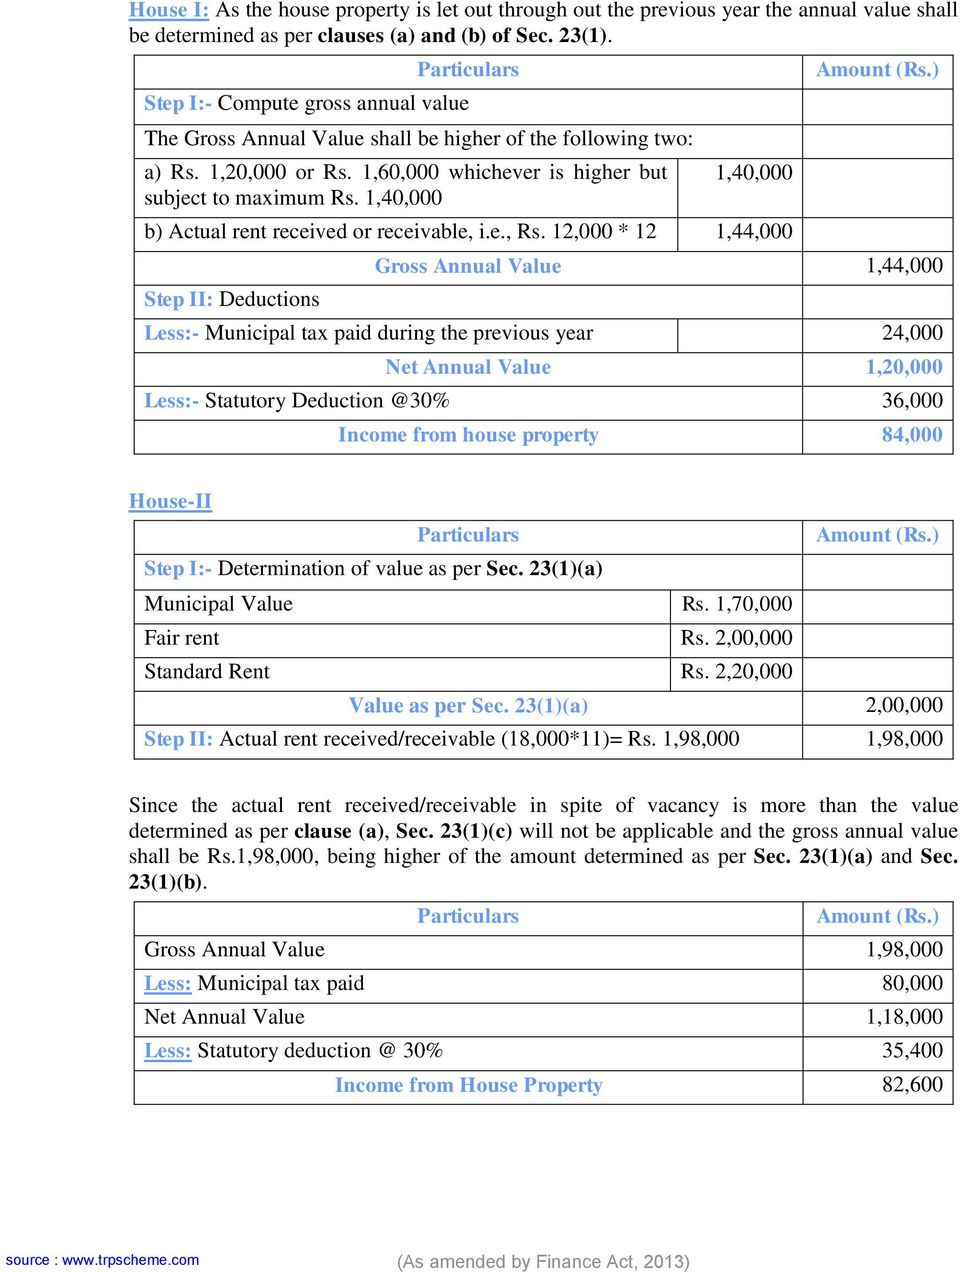 1,40,000 1,40,000 b) Actual rent received or receivable, i.e., Rs. 12,000 * 12 1,44,000 Step II: Deductions Amount (Rs.